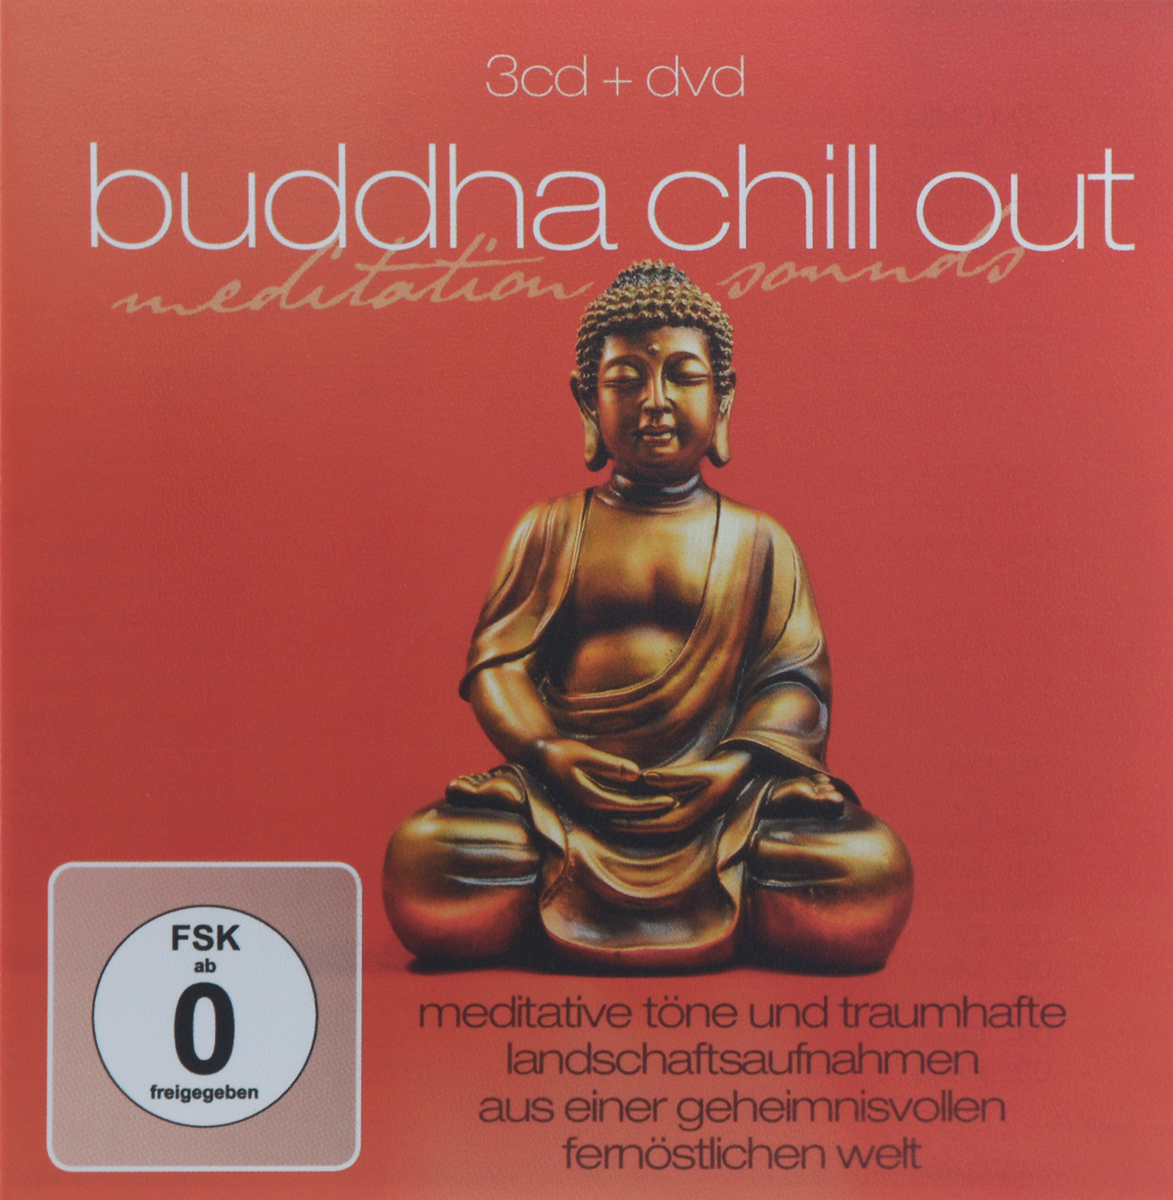 Buddha Chill Out. Meditation Sounds (3 CD + DVD)